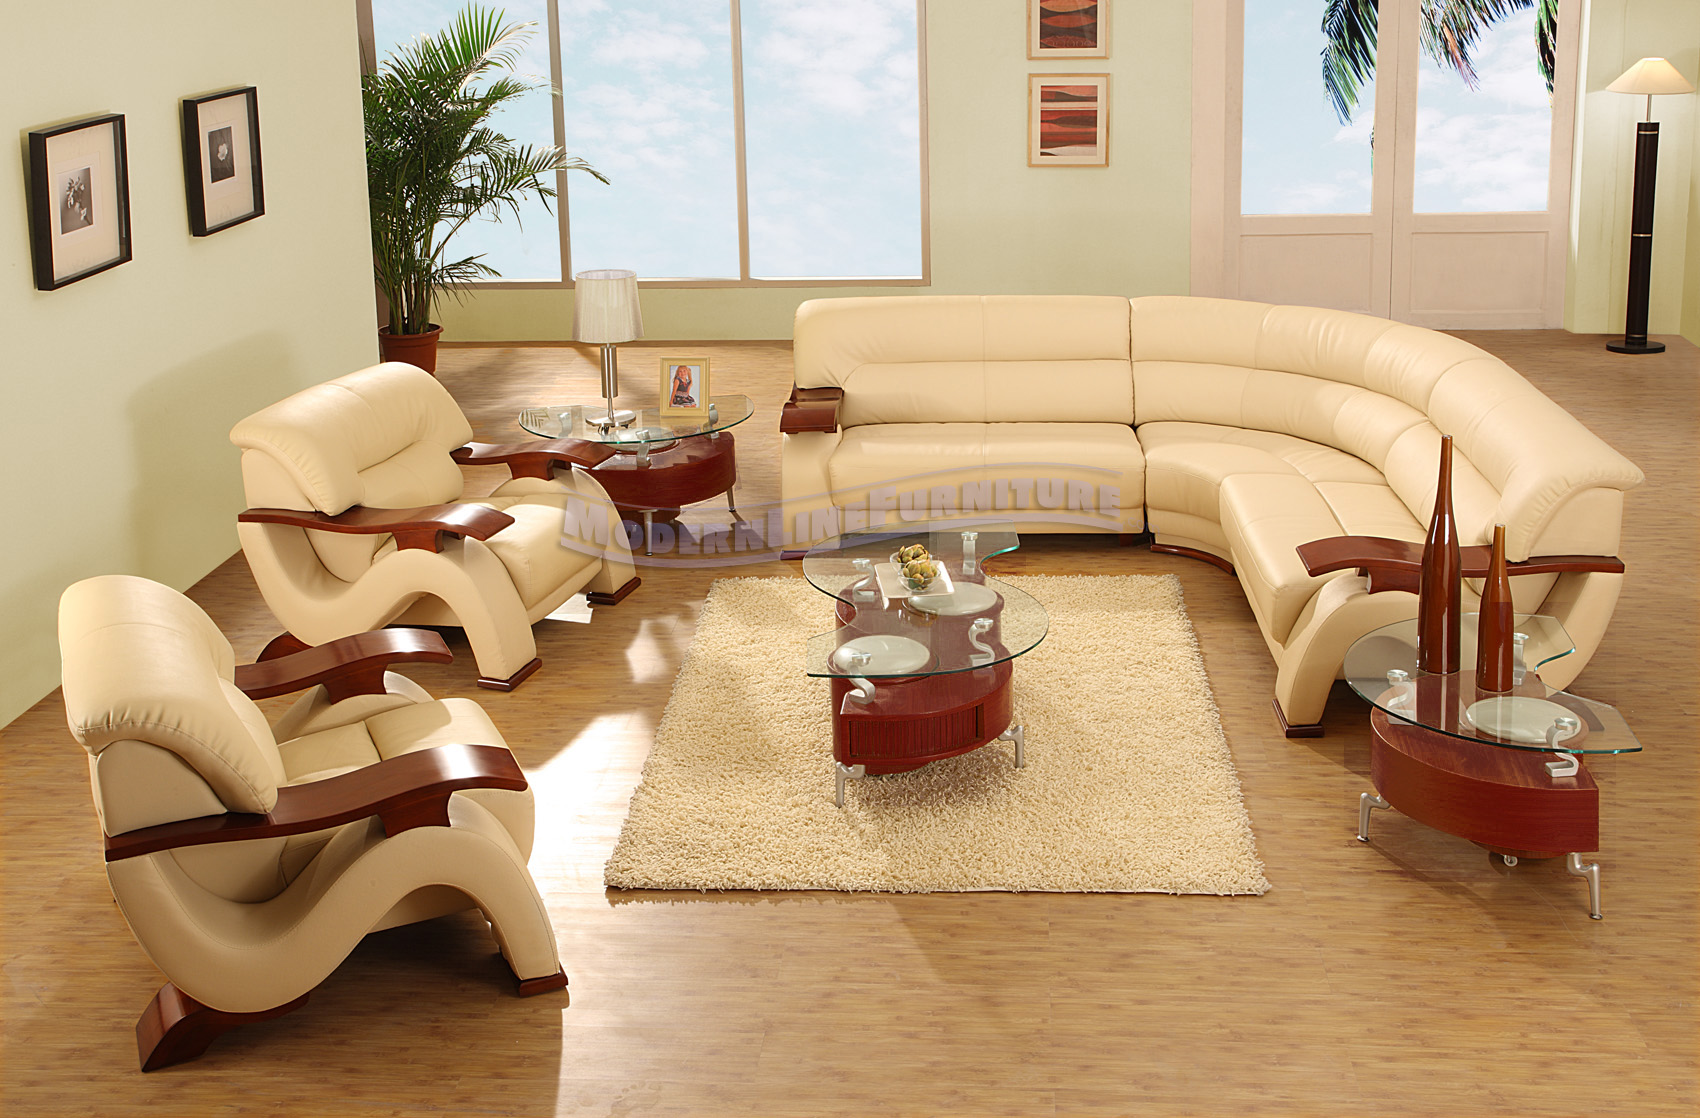 Modern line furniture commercial furniture custom made modern line furniture commercial furniture custom made furniture modern beige leather sectional sofa with two chairs coffee table and two end tables geotapseo Gallery